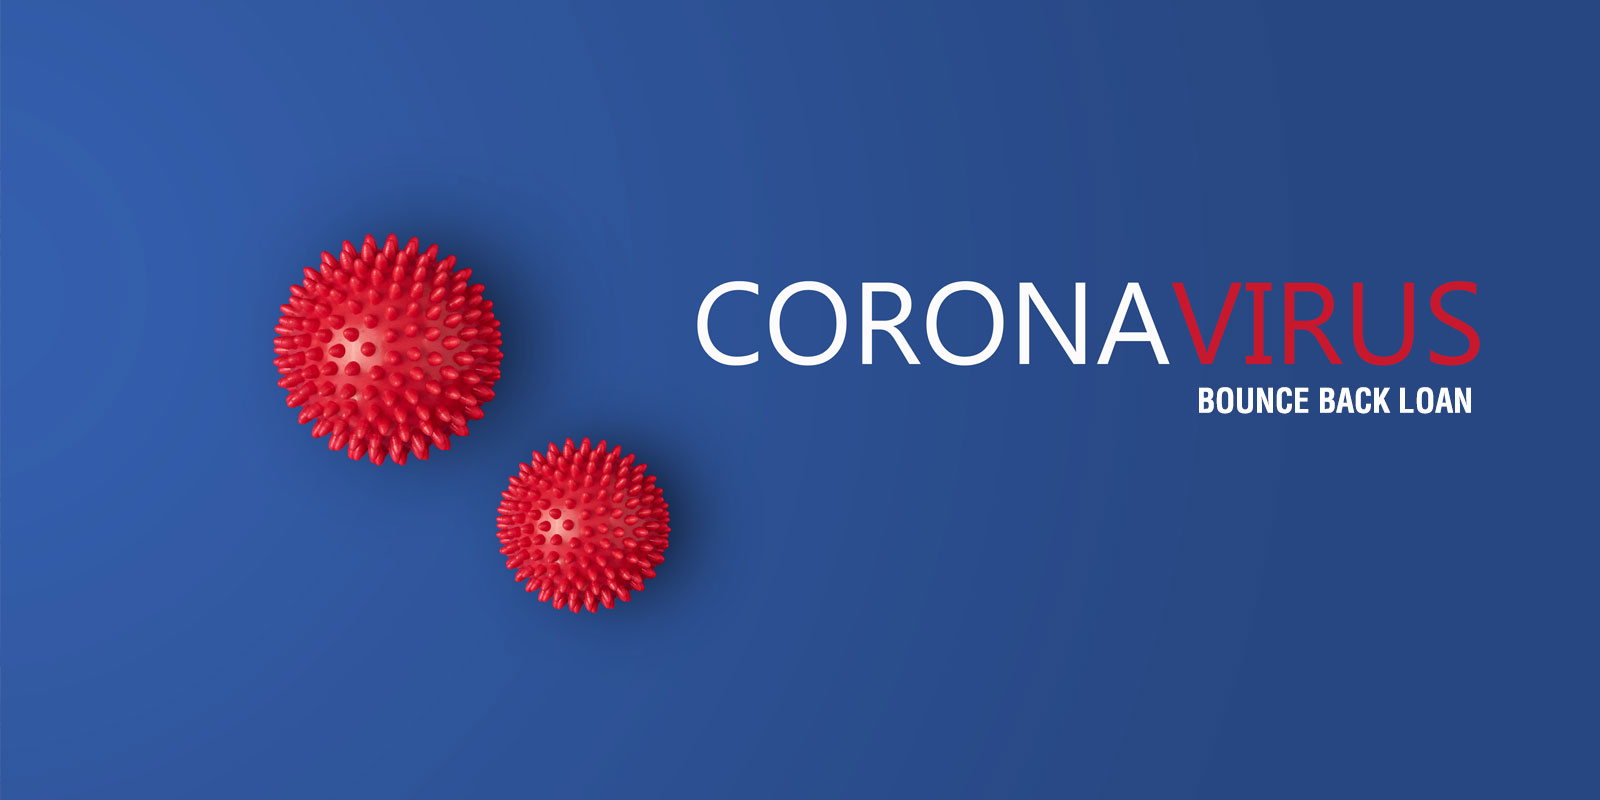 Bounce Back loan announced for small businesses affected by Coronavirus (COVID-19)